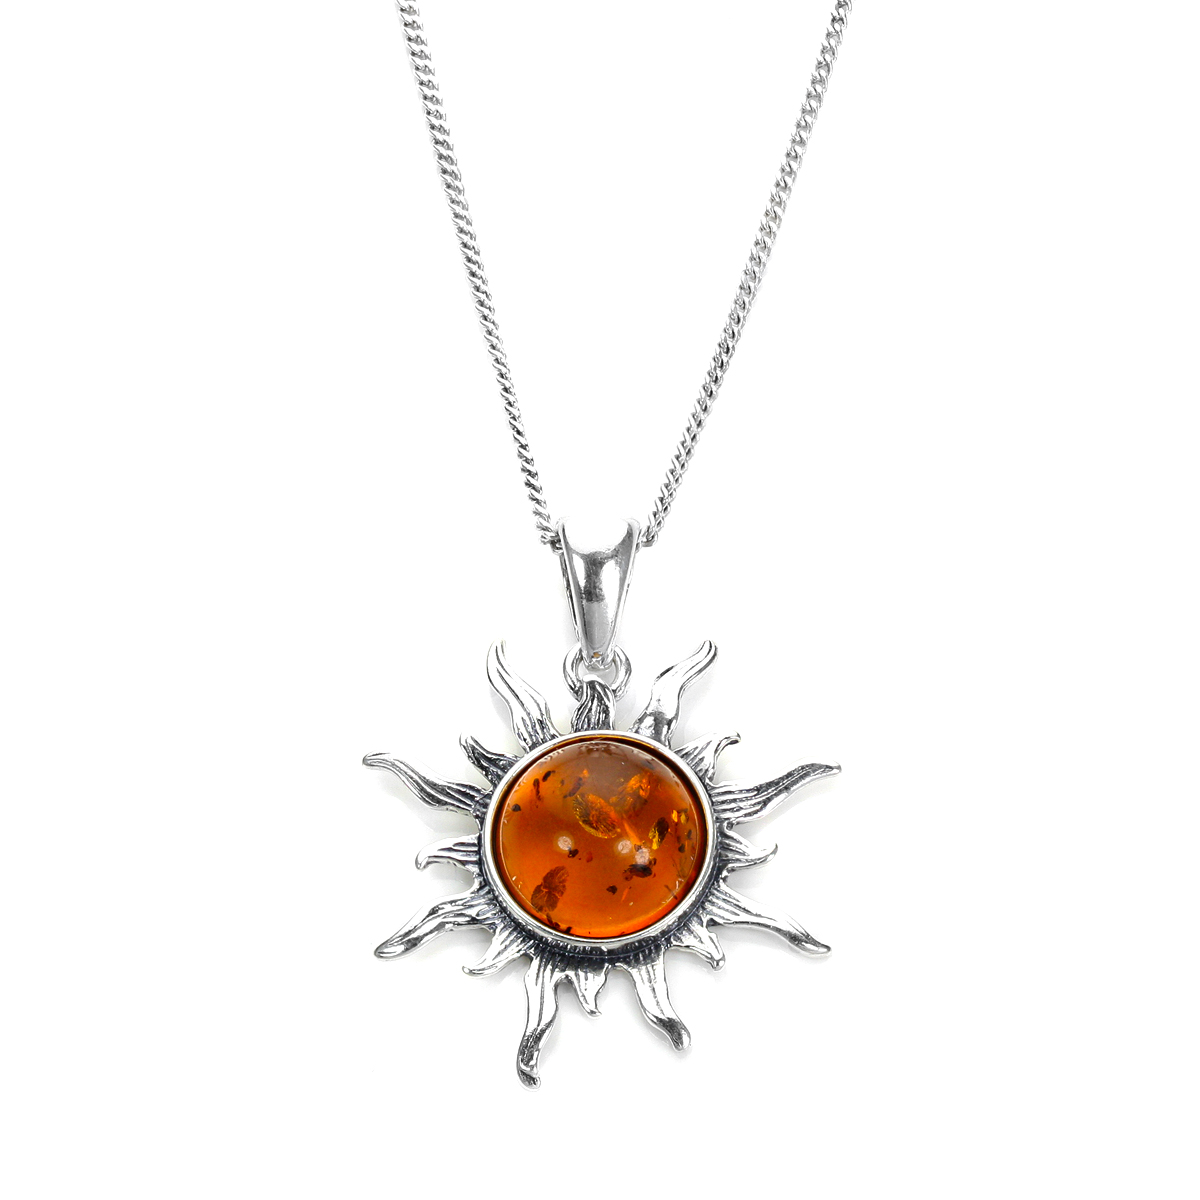 An image of Sterling Silver Baltic Amber Flaming Sun Pendant